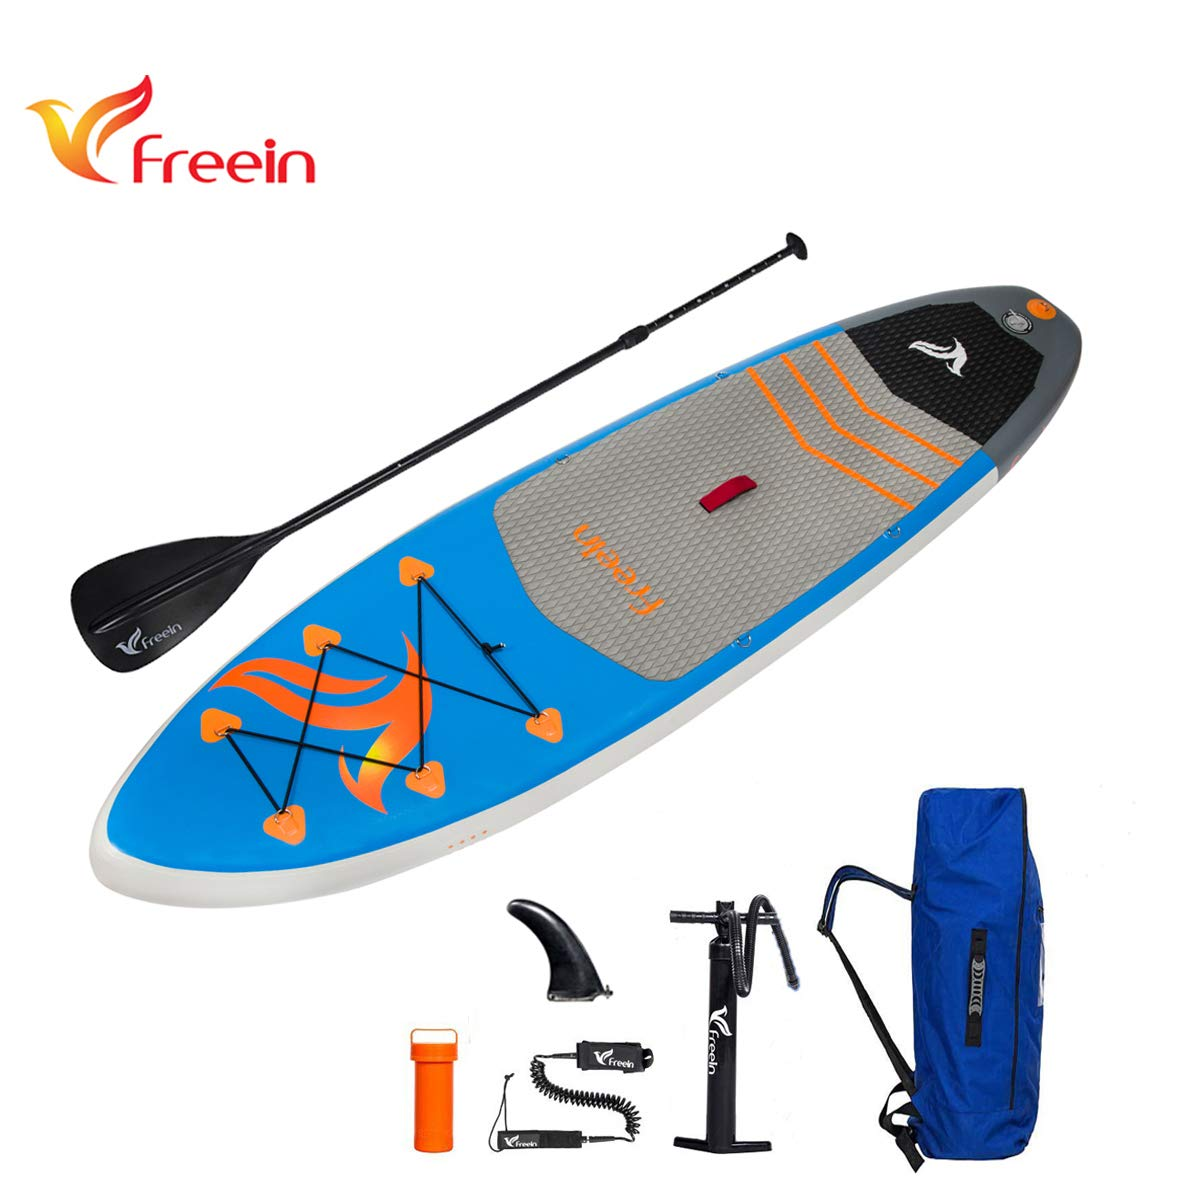 Freein Inflatable Stand Up Paddleboard, All Round 10'2'' Long 31'' Wide 6'' Thick Inflatable SUP Paddle Board by Freein